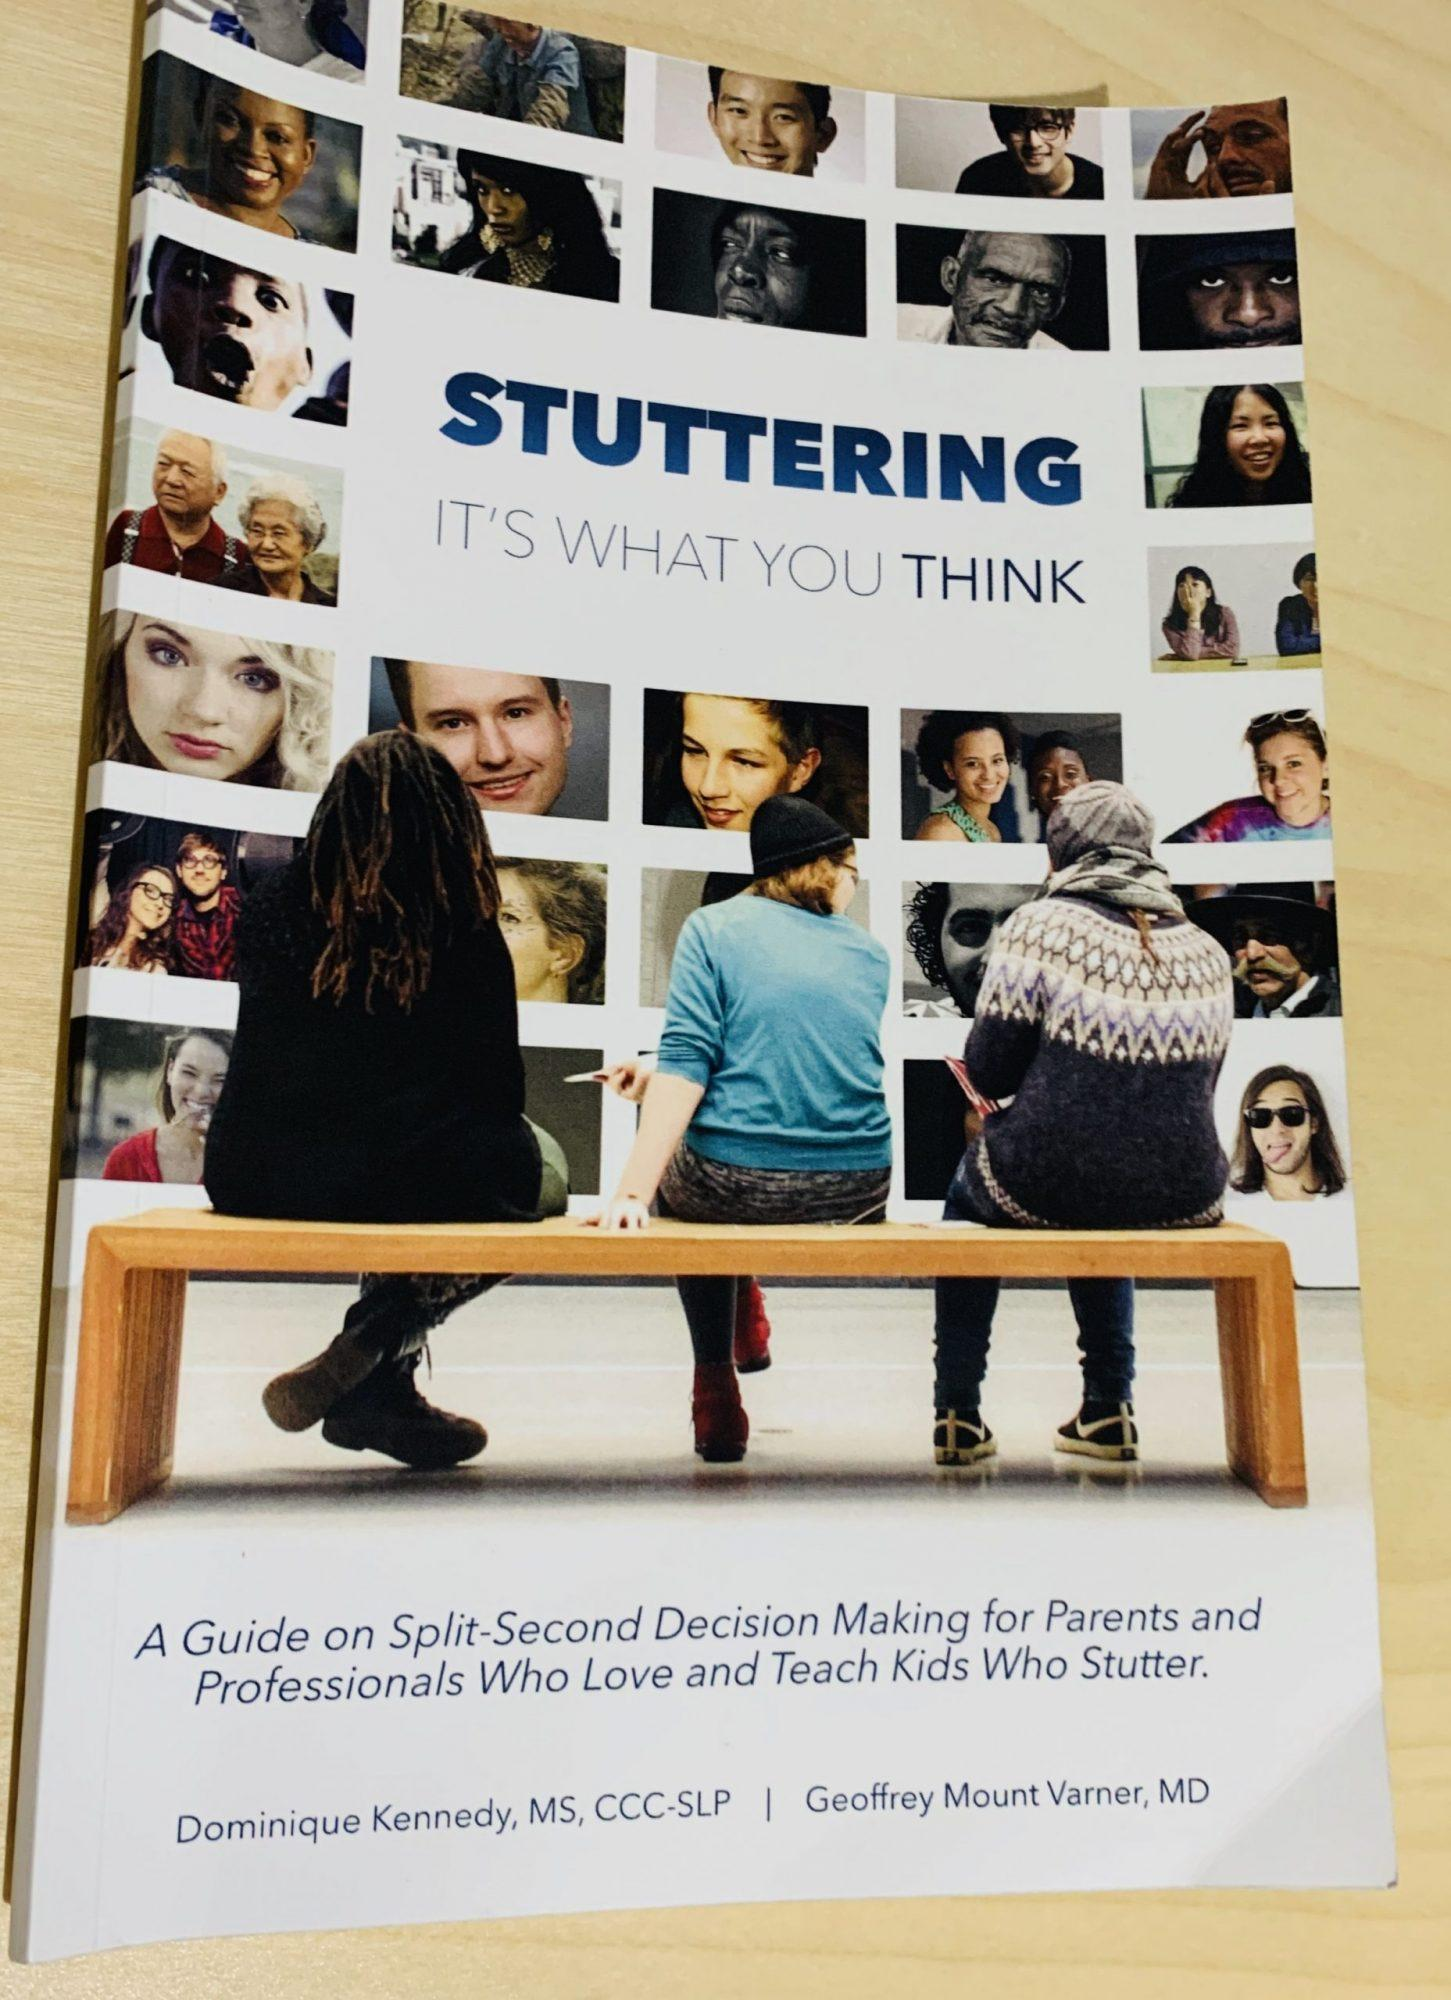 Stuttering It's What You Think Book Review By speech language pathologist, Kimberly Scanlon